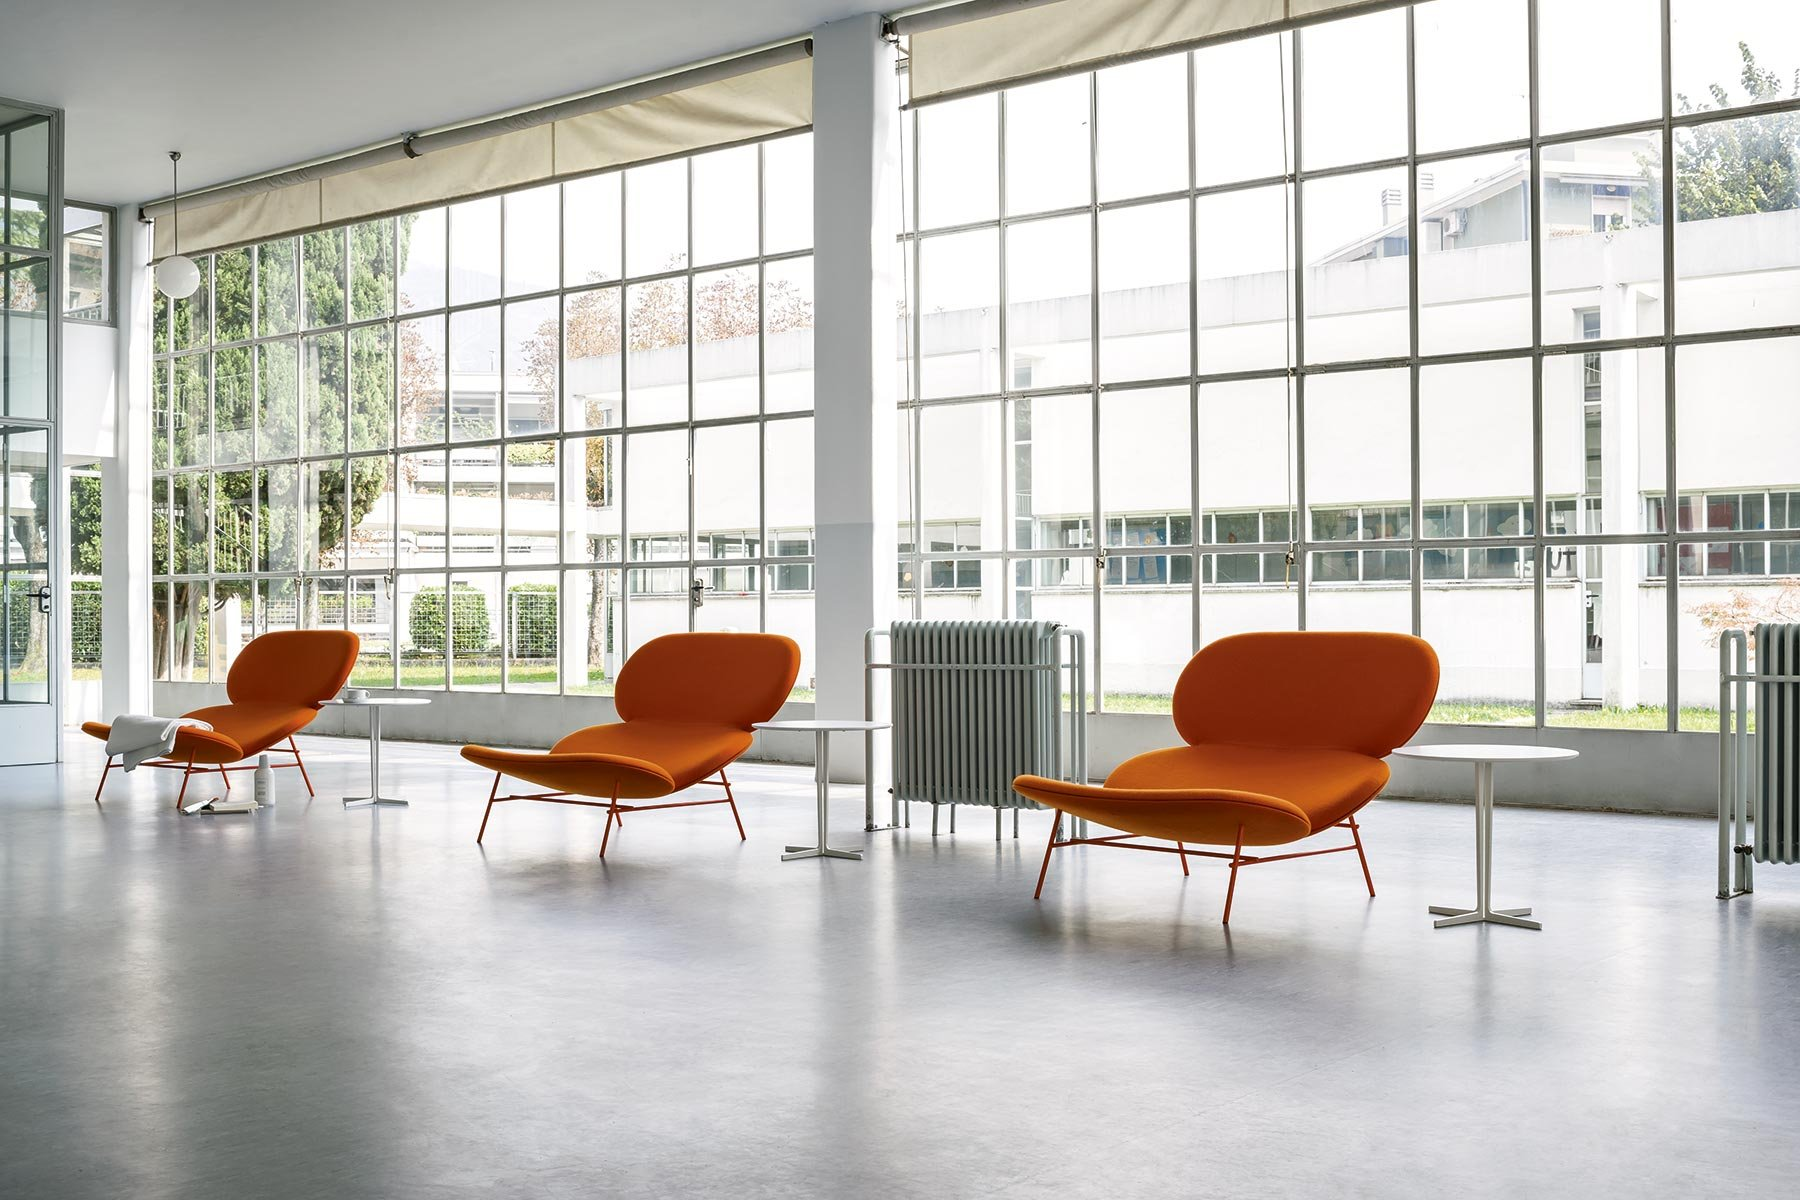 Kelly L Lounge Chair from Tacchini, designed by Claesson Koivisto Rune